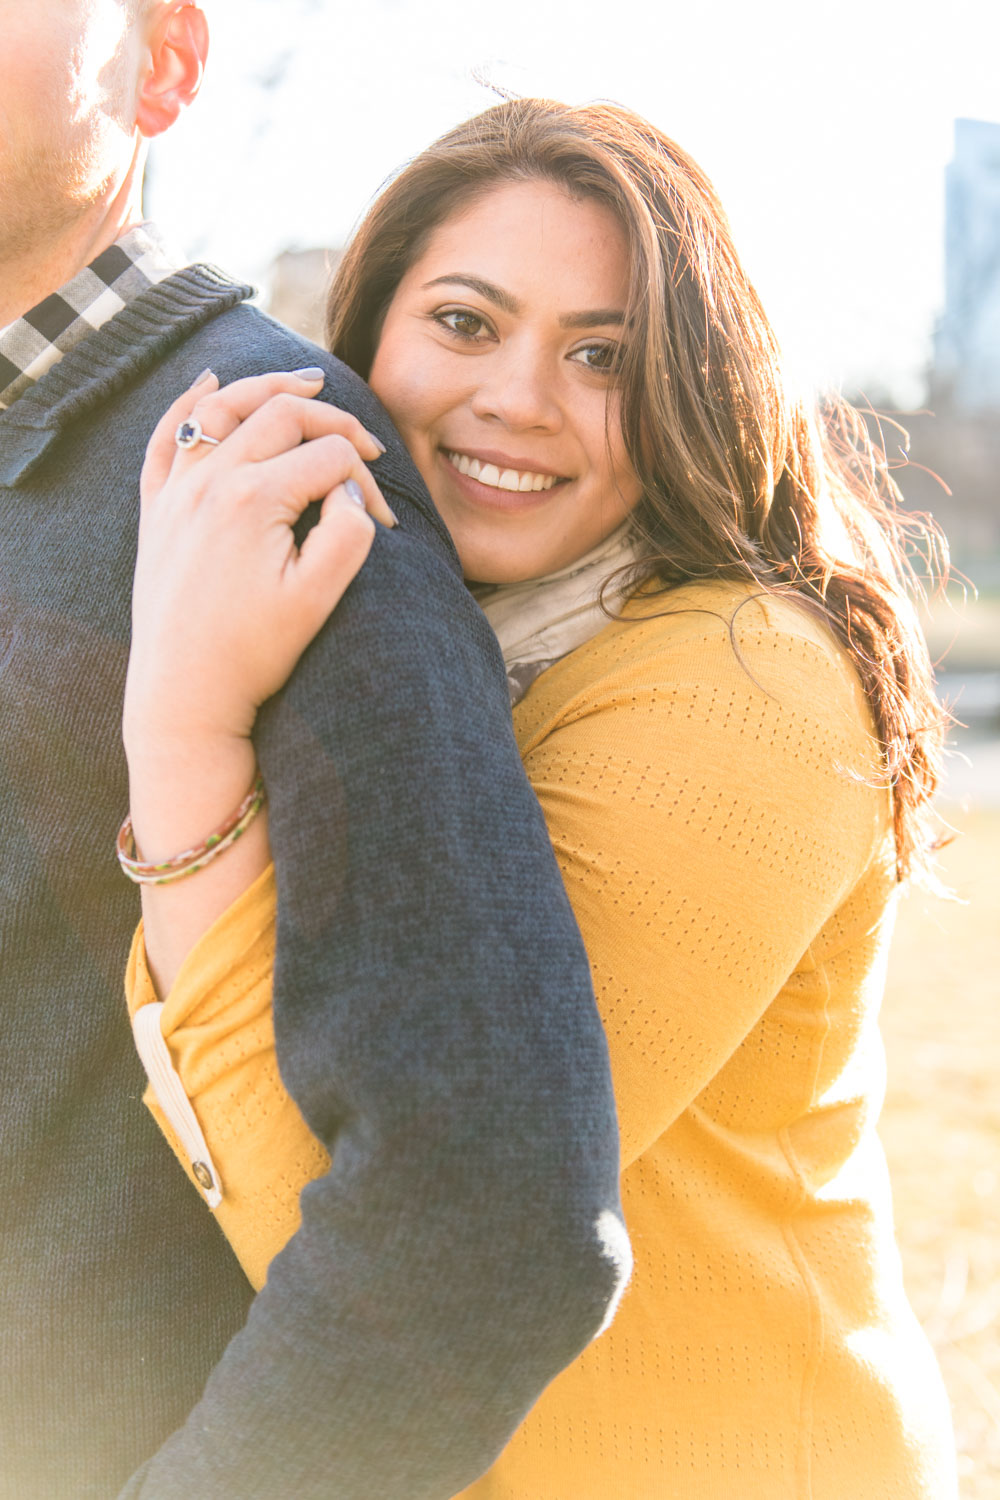 Andrea + Scott | Dog Lovers Boston Spring Sunrise Engagement Session | Boston and New England Engagement Photography | Lorna Stell Photo